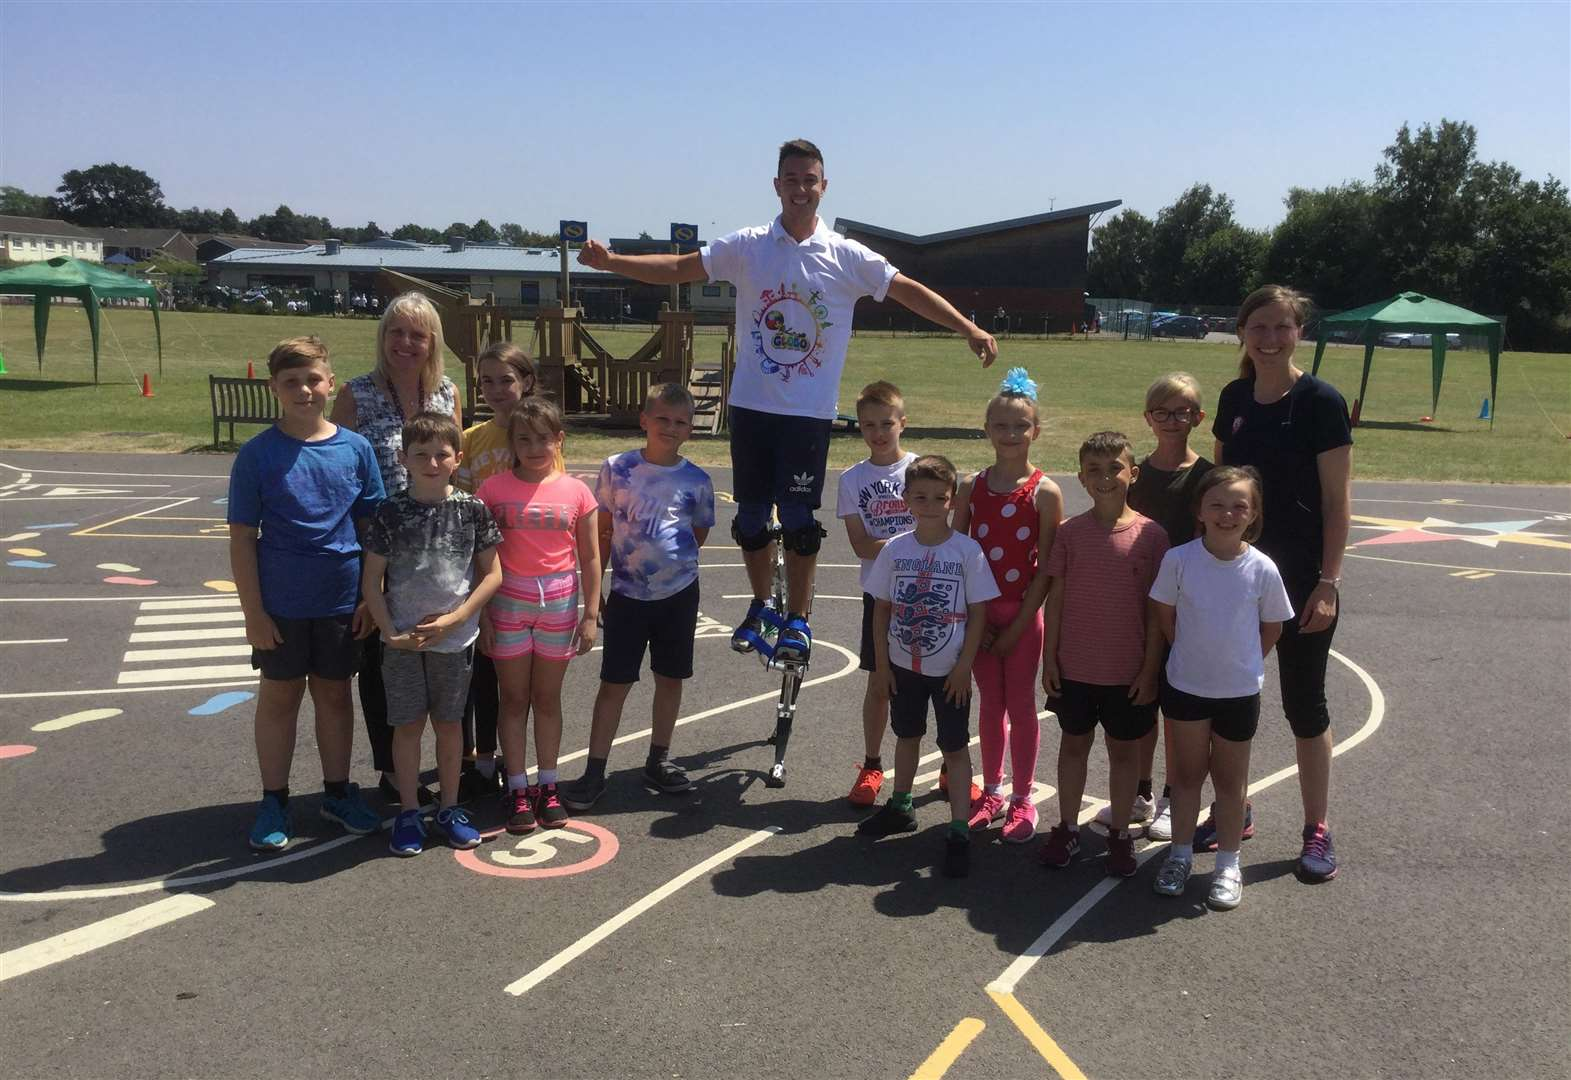 Promoting healthy lifestyles at Fairstead Primary and Nursery School